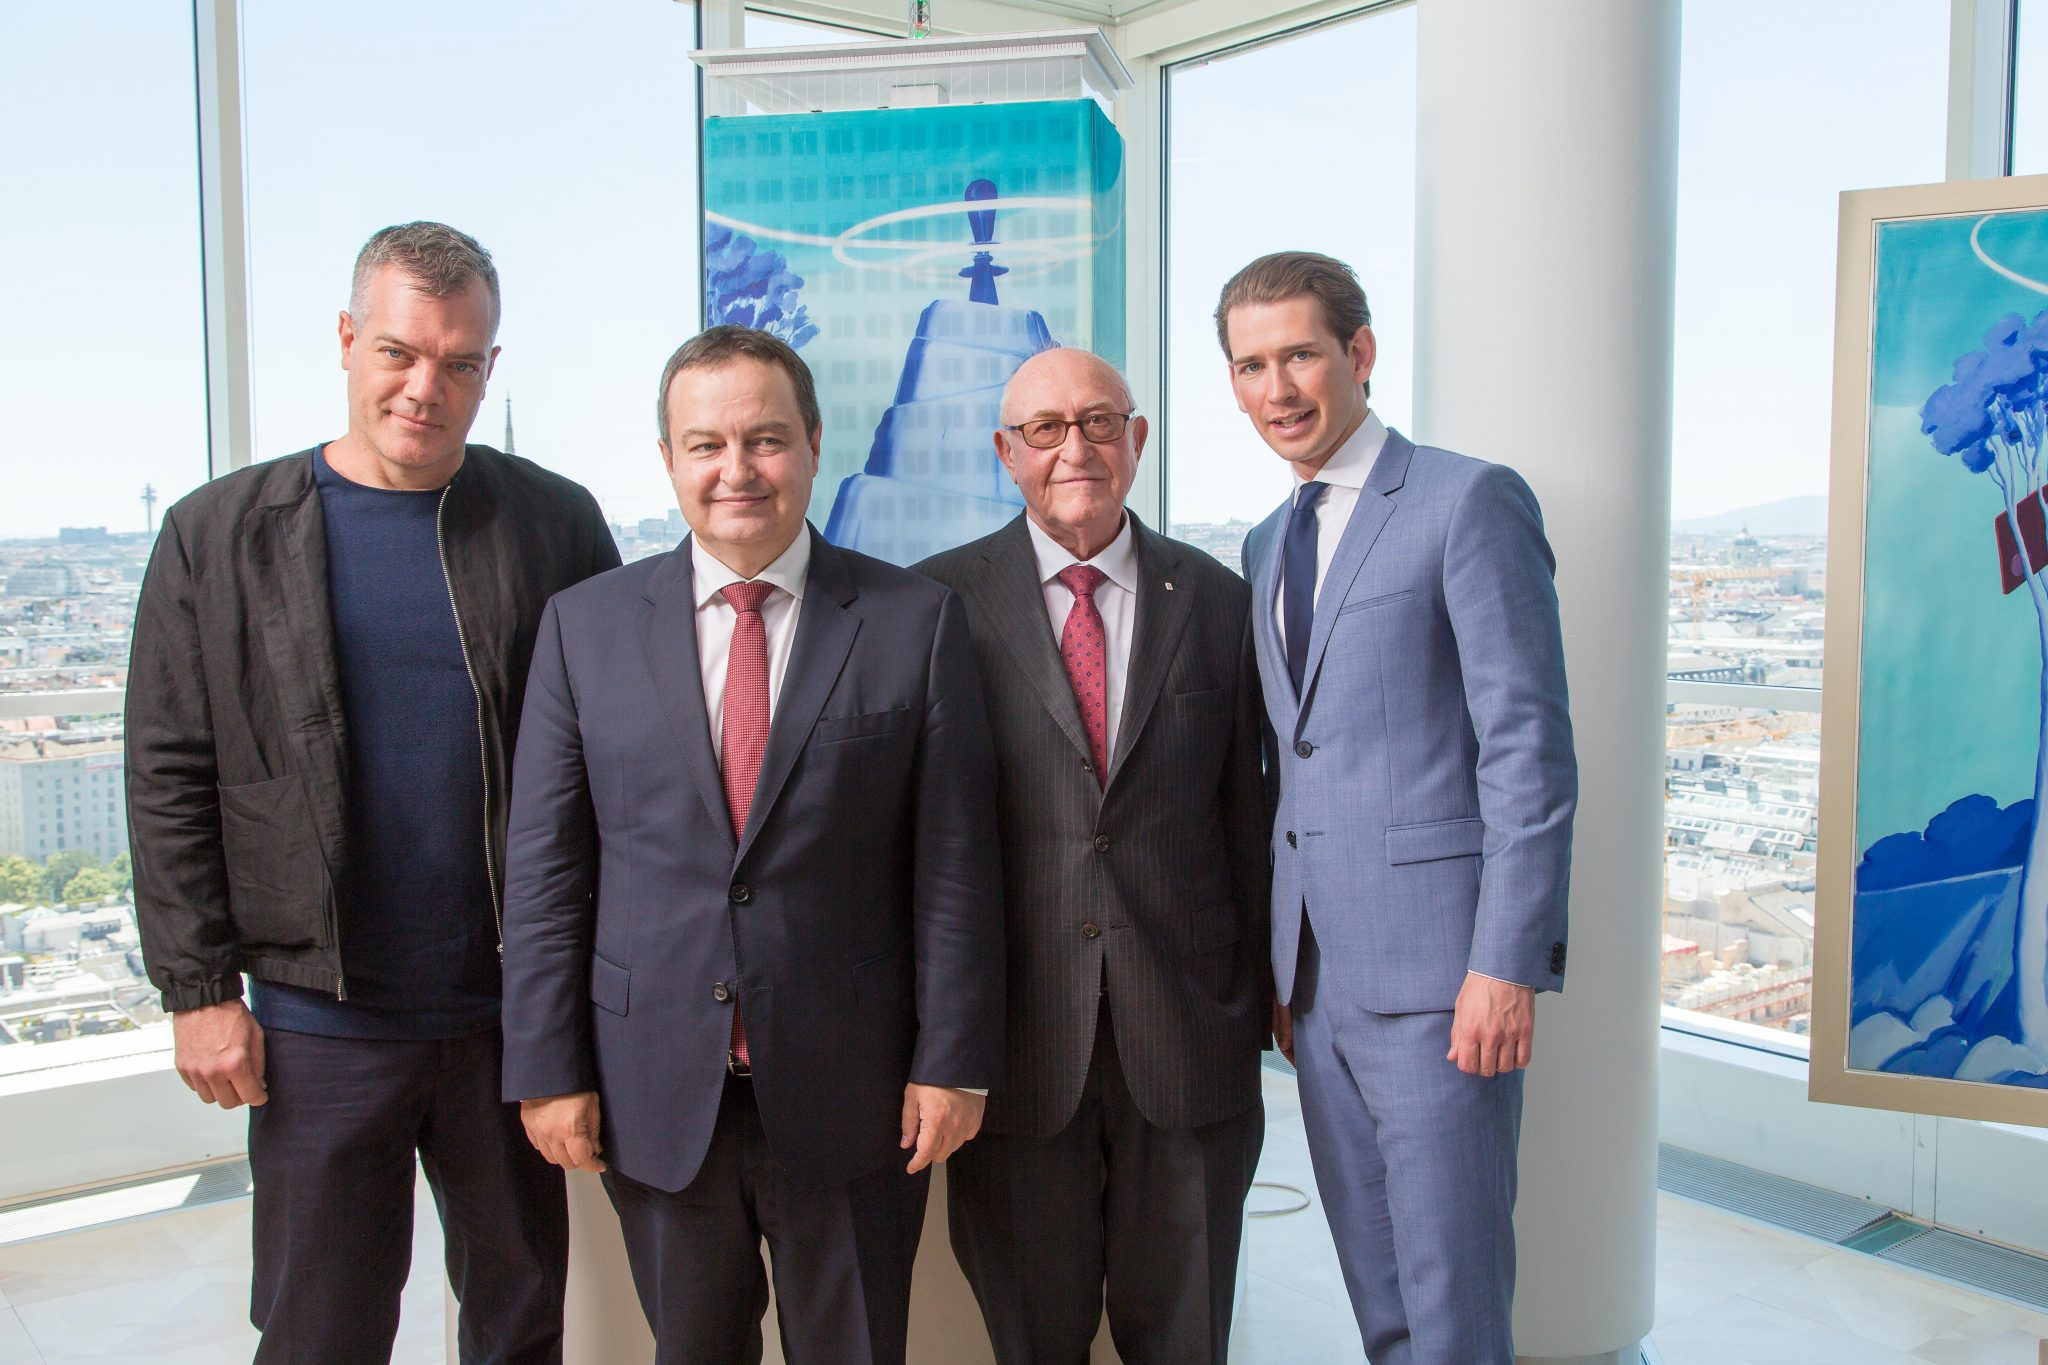 From left to right: artist Mihael Milunović, Ivica Dačić (Acting Prime Minister and Foreign Minister of the Republic of Serbia), Günter Geyer (Managing Board Chairman, Wiener Städtische Versicherungsverein) and Sebastian Kurz (Austrian Federal Minister for Europe, Integration and Foreign Affairs)© Wiener Städtische Versicherungsverein/Richard Tanzer